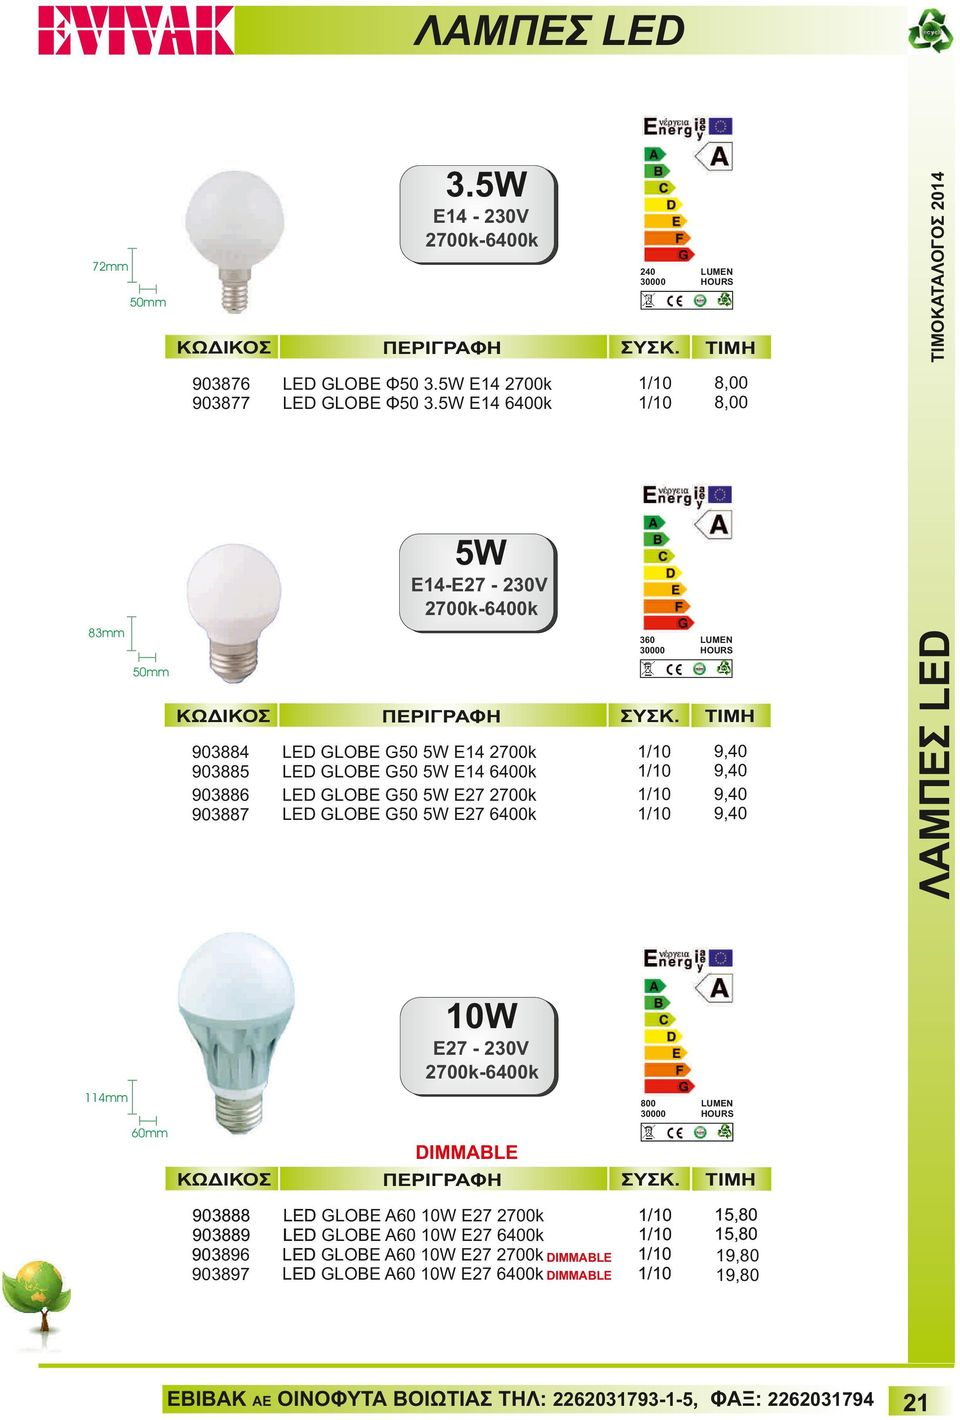 2700k LED GLOBE G50 5W E27 6400k 9,40 9,40 9,40 9,40 ΛΑΜΠΕΣ LED E14-E27-230V 2700k-6400k 10W E27-230V 2700k-6400k 114mm 800 30000 60mm DIMMABLE